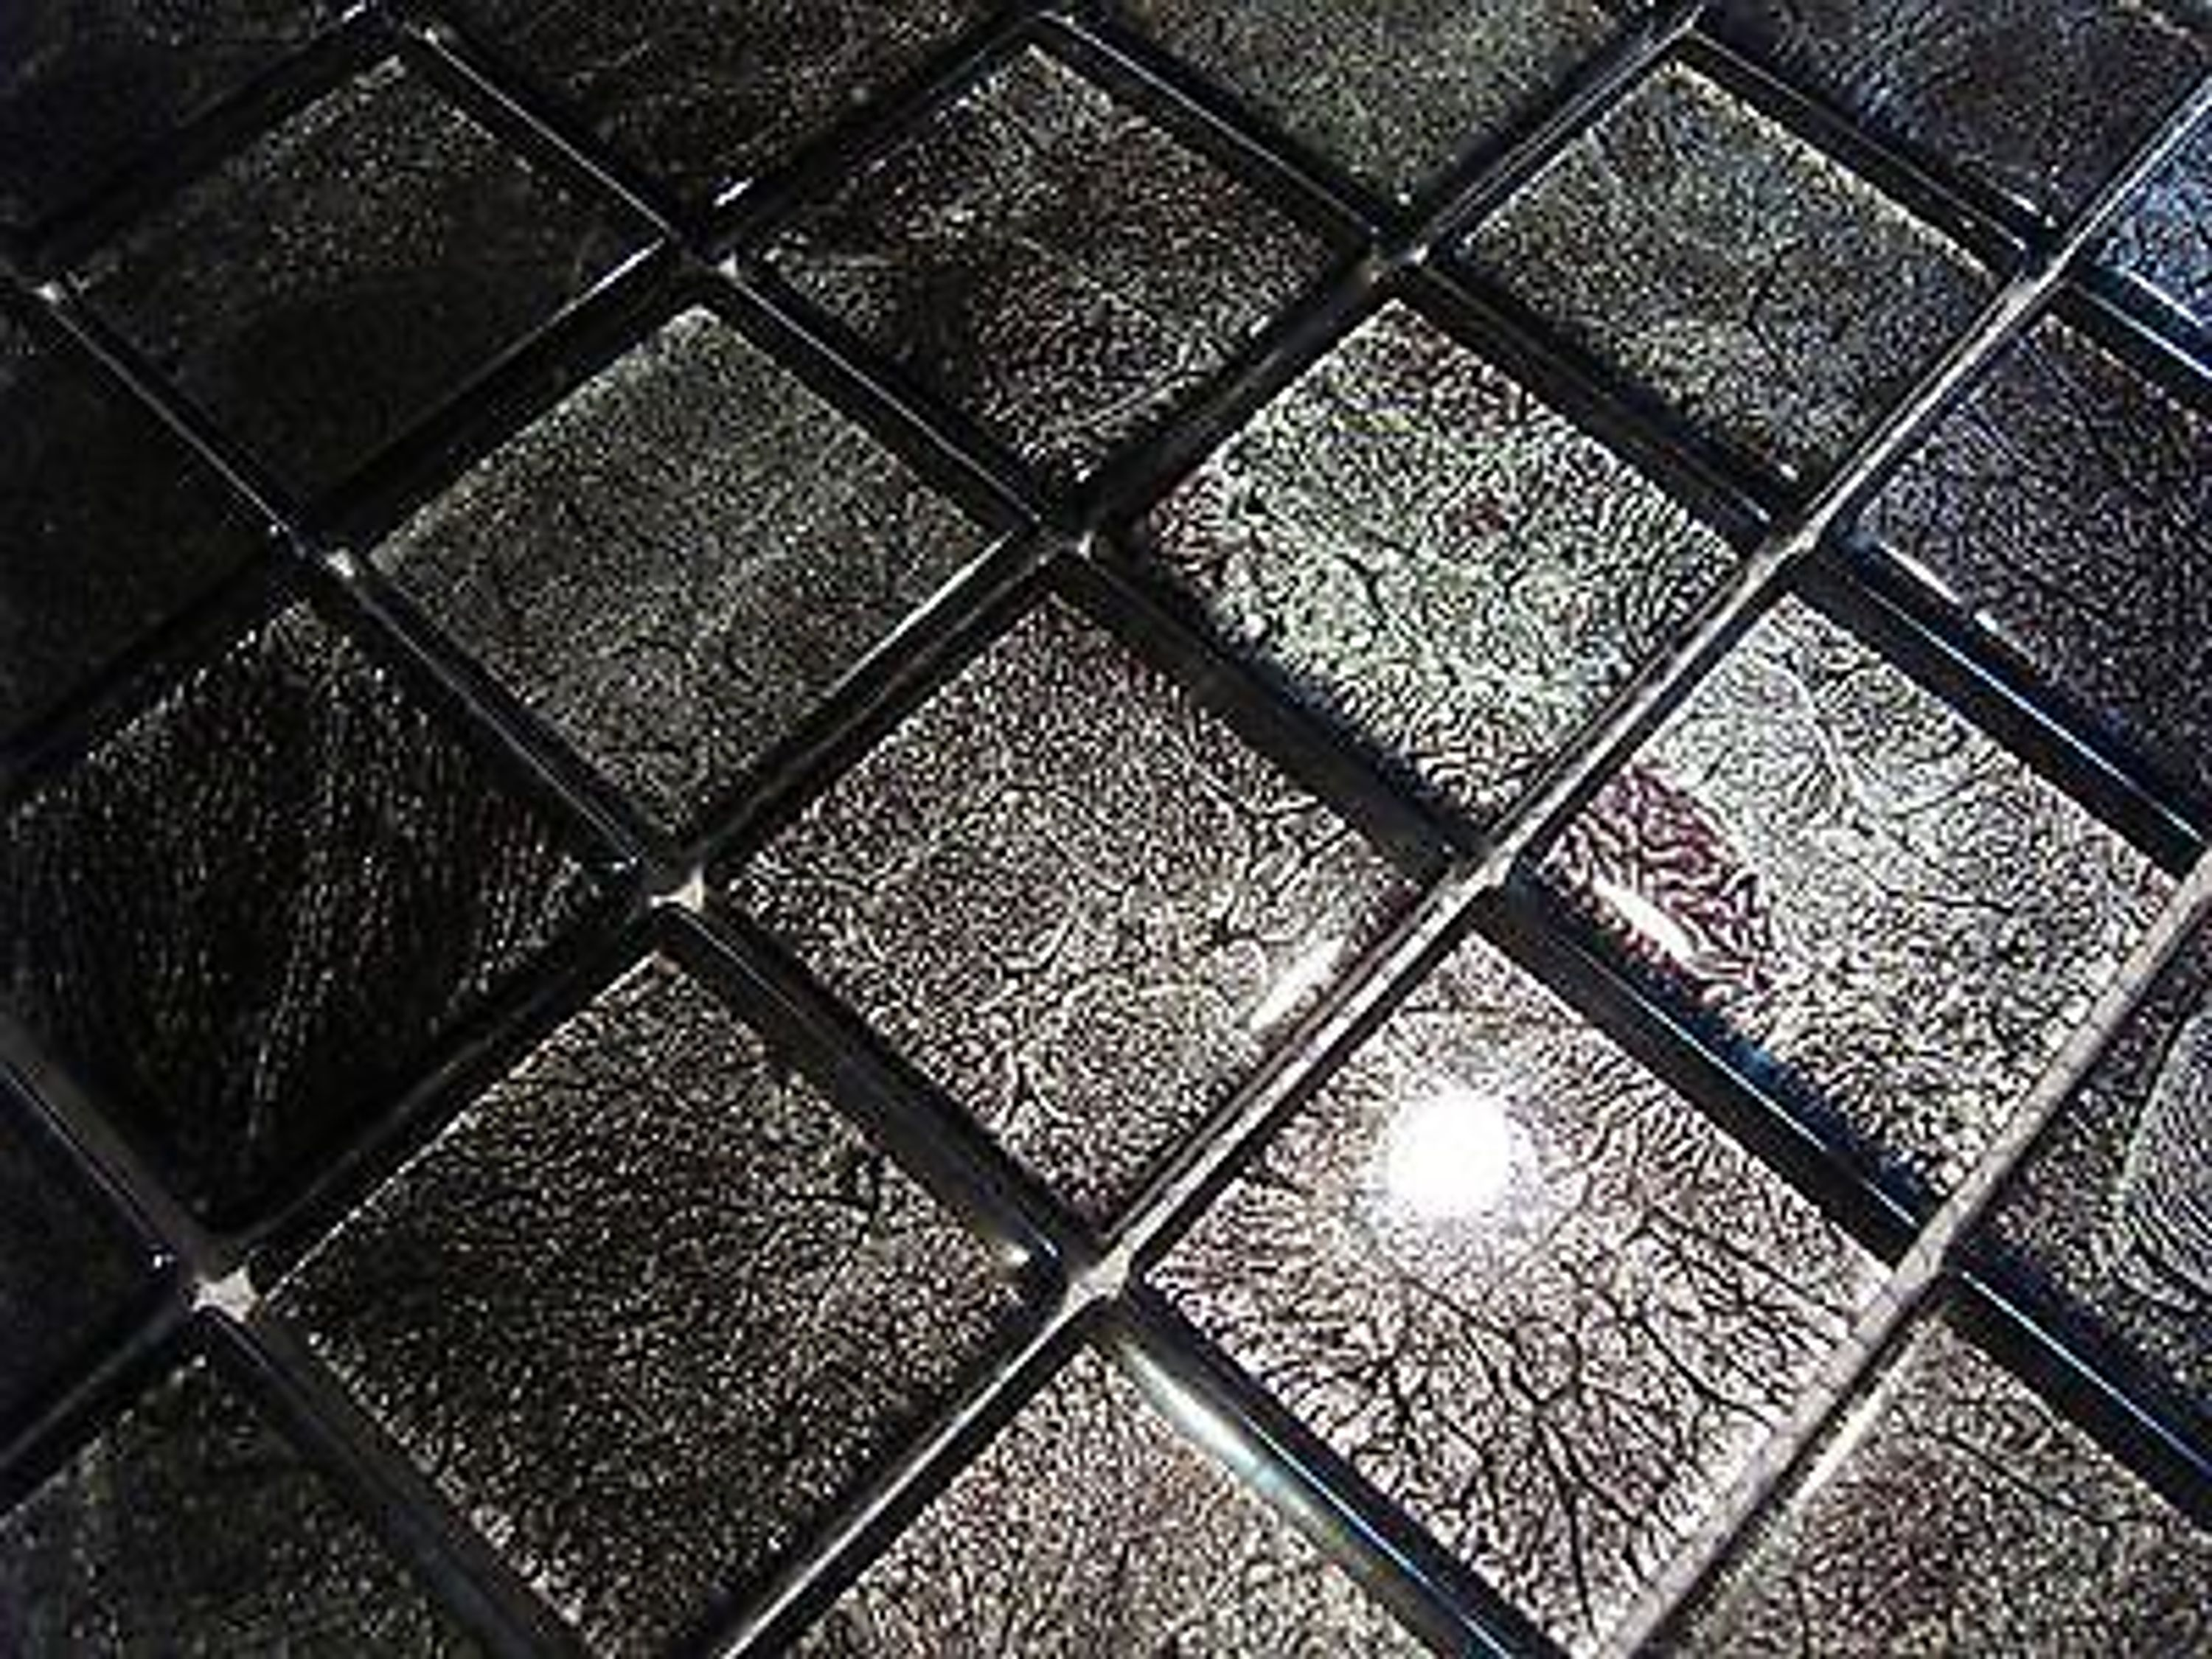 glasmosaik mosaik fliesen klarglas metall silber purple schwarz bad pool dusche kaufen bei. Black Bedroom Furniture Sets. Home Design Ideas